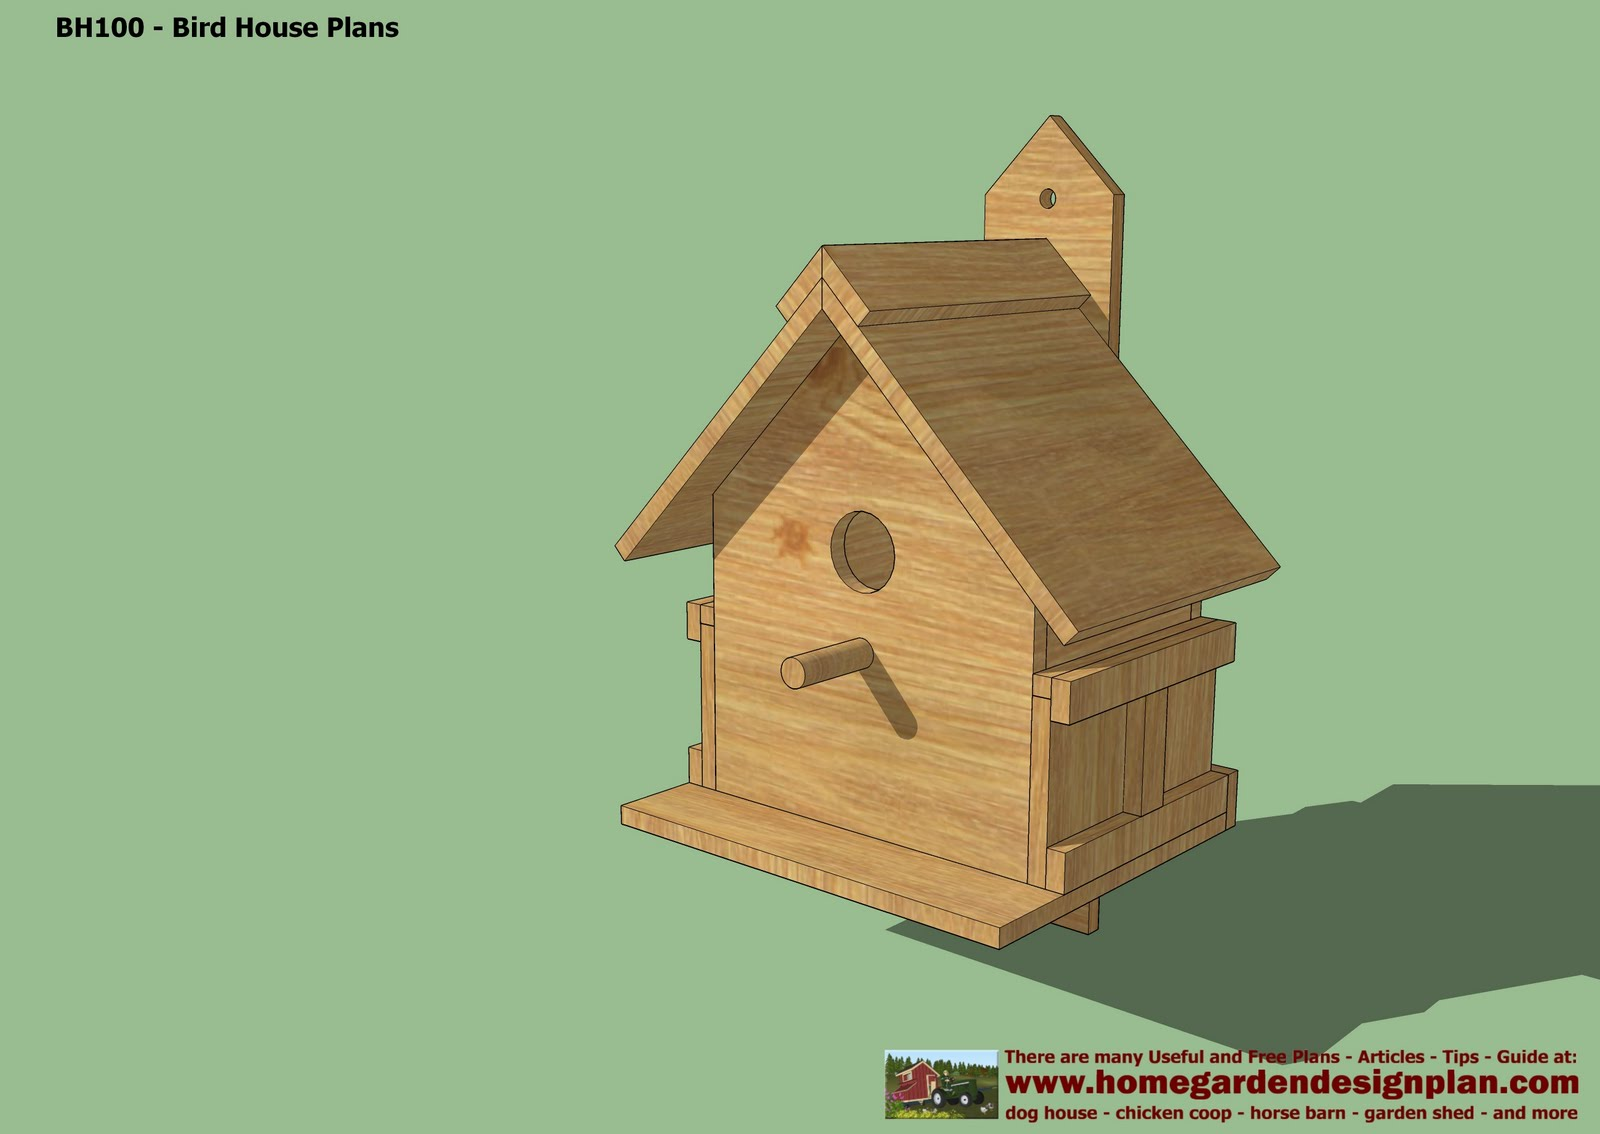 Home garden plans bh102 bird house plans construction Build a house online free